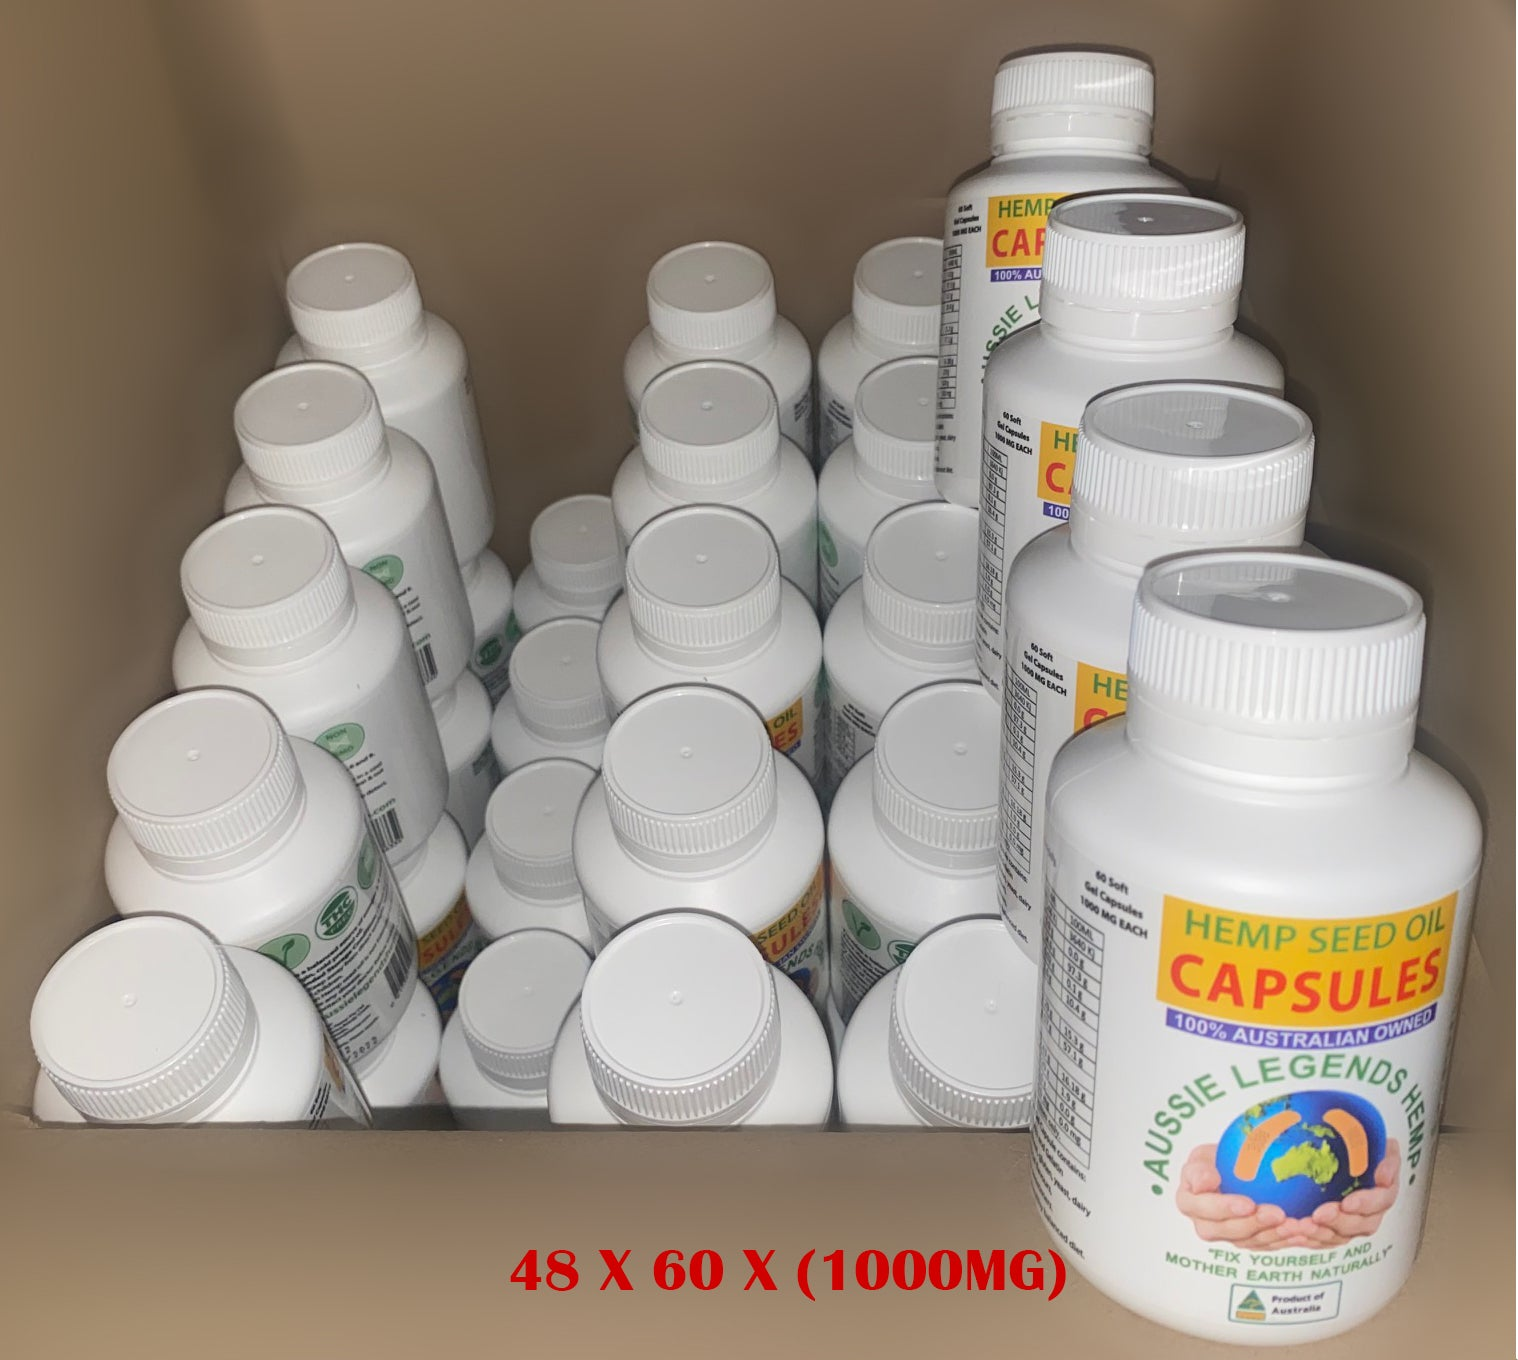 FULL BOX - CAPSULES - 48 x BOTTLES OF 60 CAPSULES